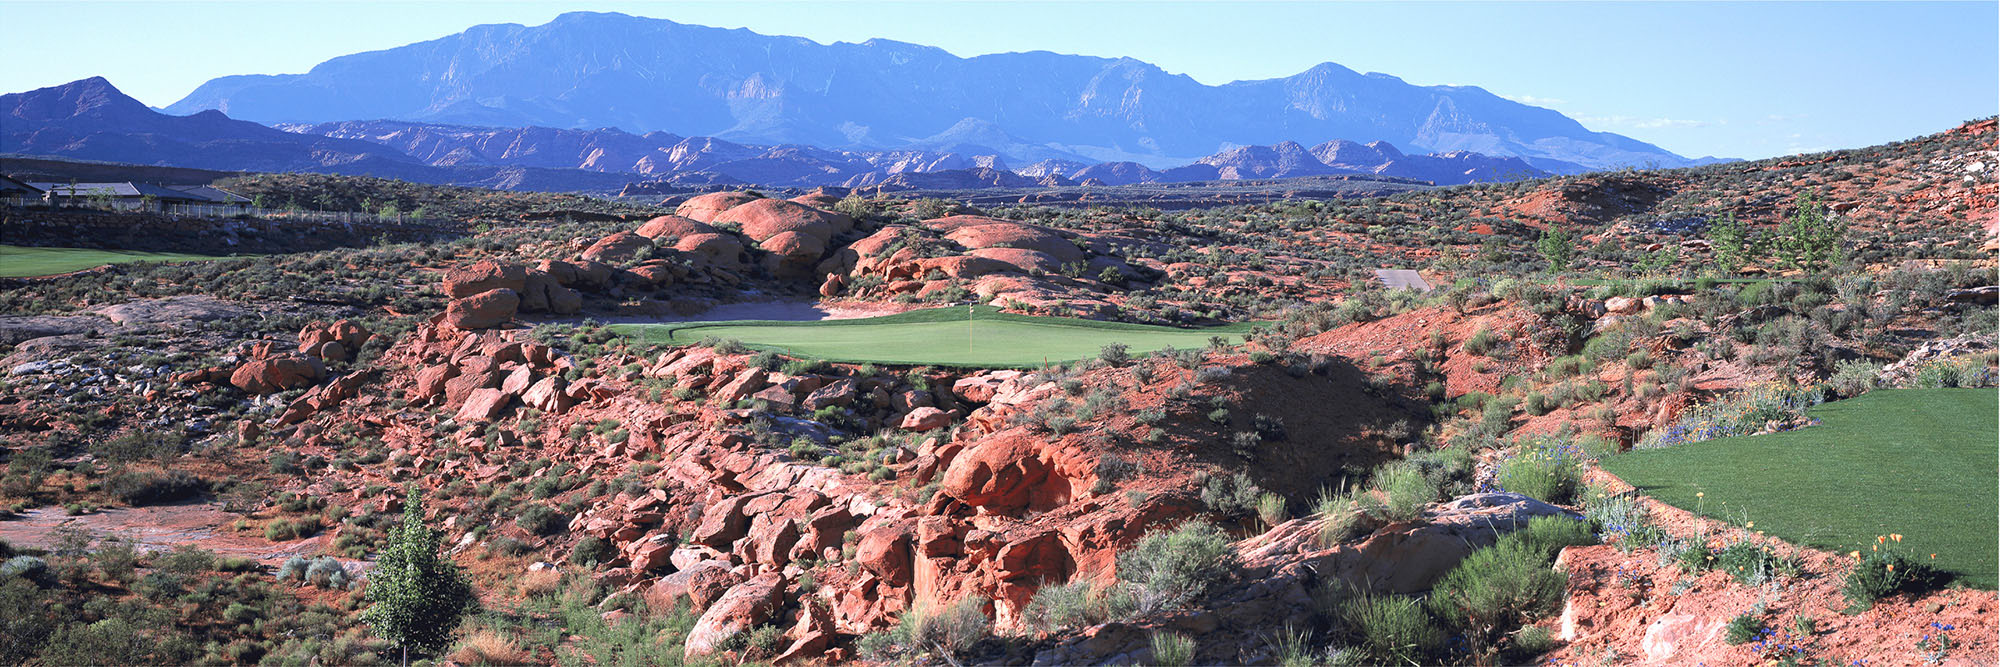 Golf Course Image - Coral Canyons No. 6